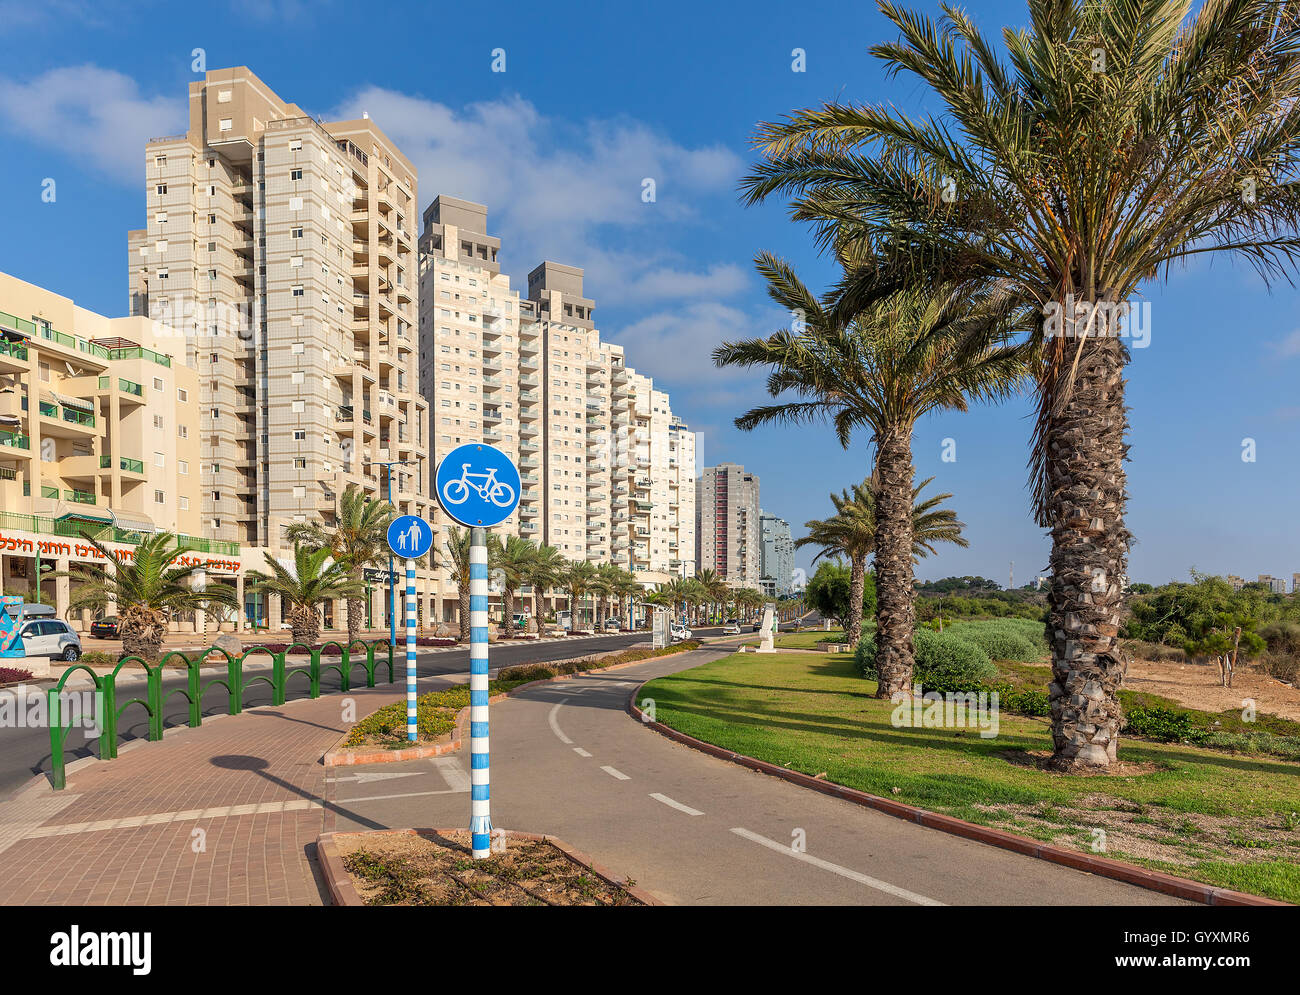 Contemporary residential buildings on avenue in Ashqelon, Israel. - Stock Image